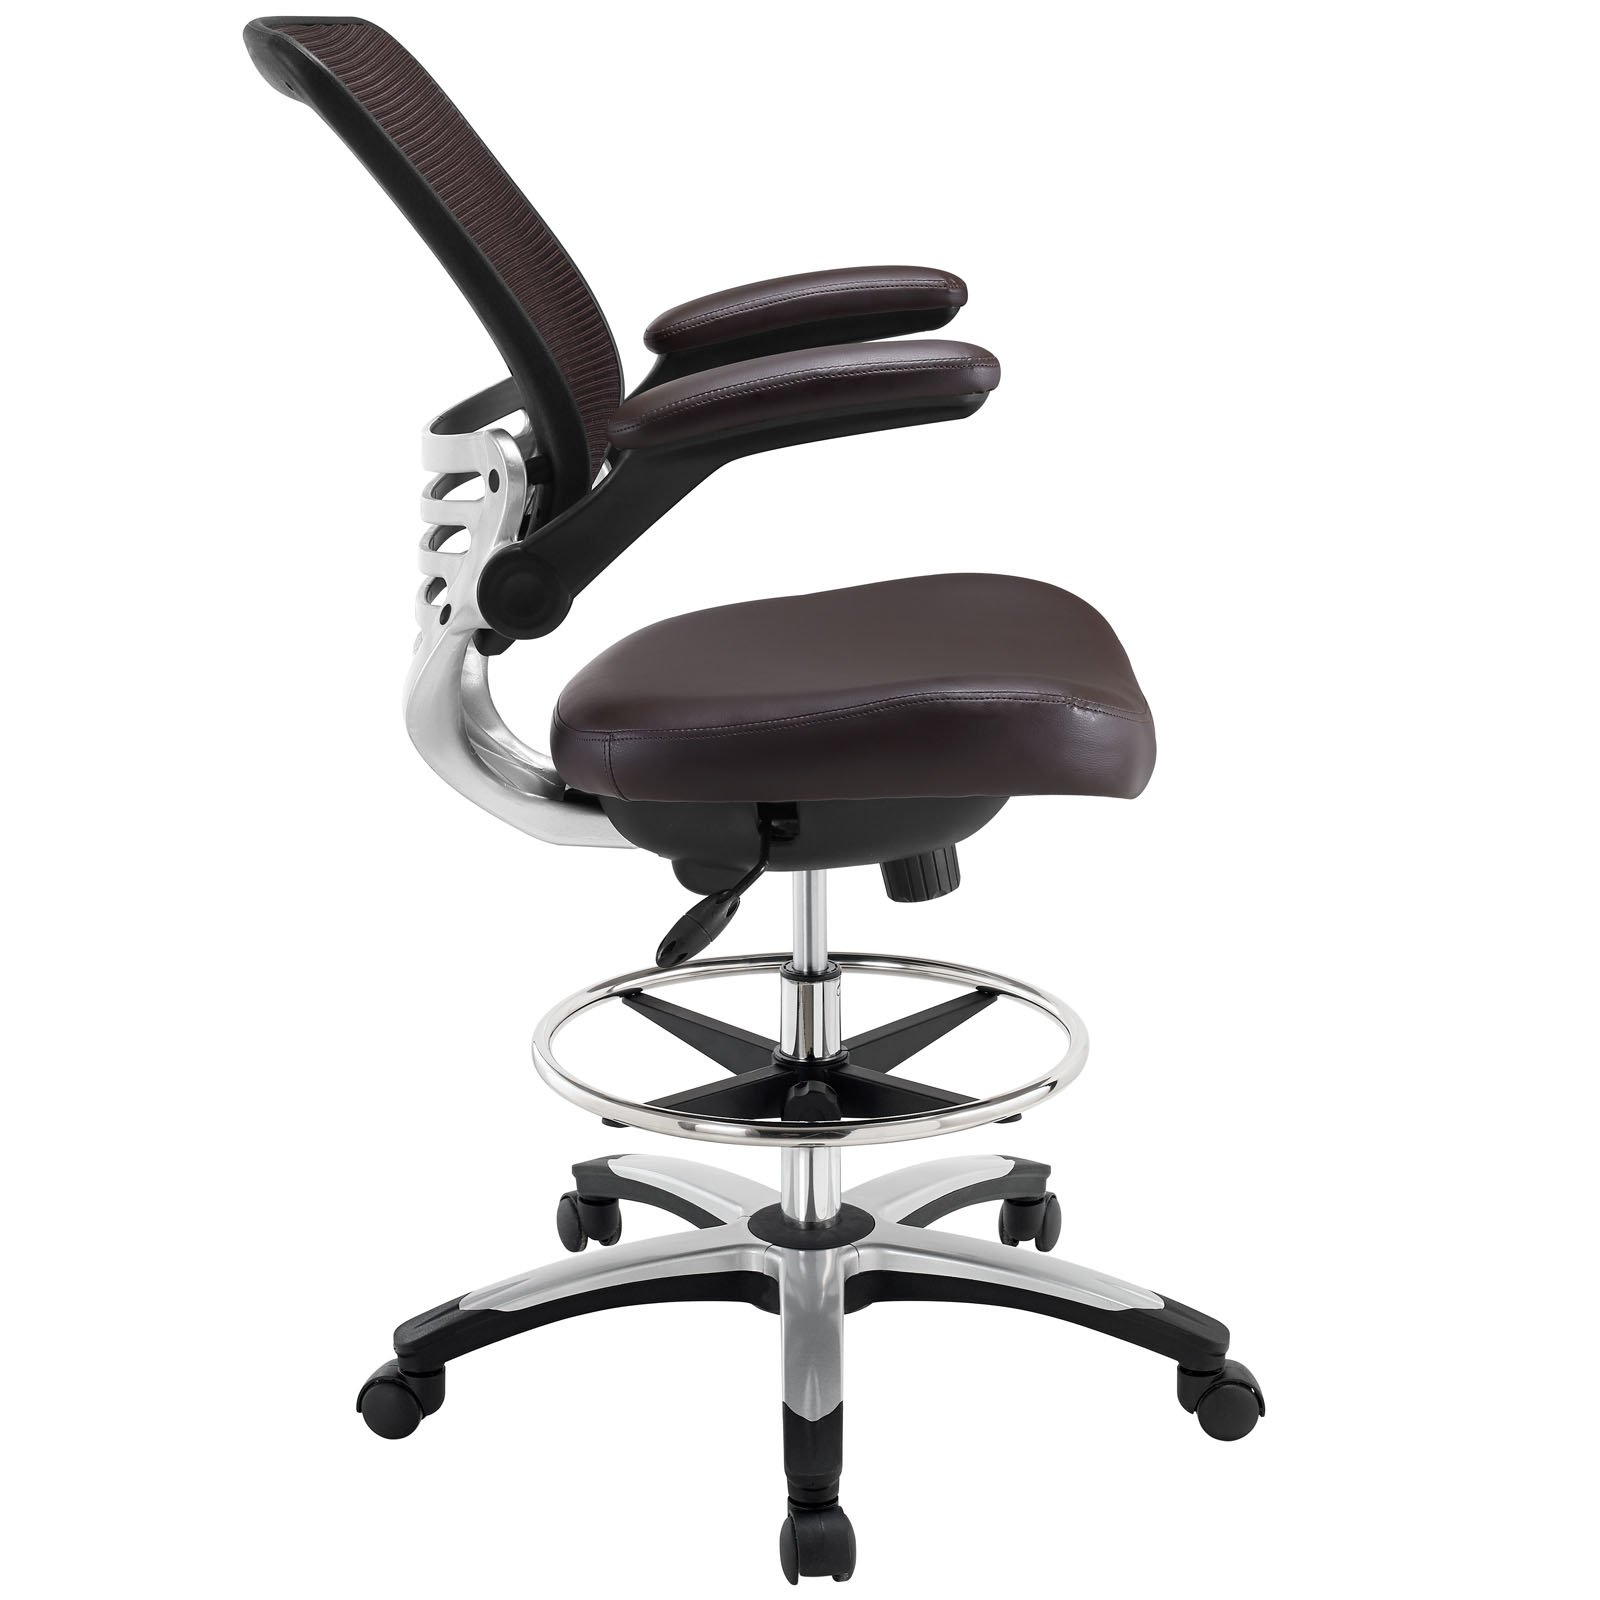 Modway Edge Drafting Chair In Brown - Reception Desk Chair - Tall Office Chair For Adjustable Standing Desks - Flip-Up Arm Drafting Table Chair by Modway (Image #4)